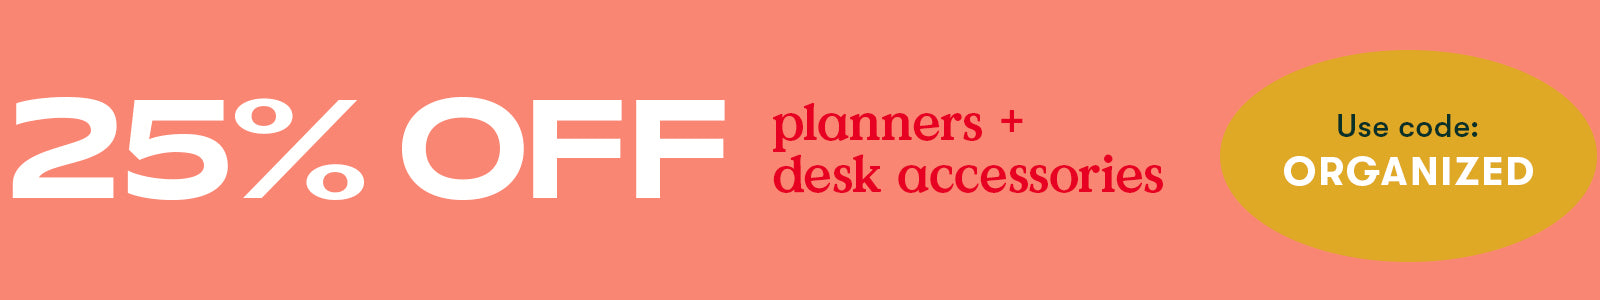 25% off planners + desk accessories. Use code ORGANIZED